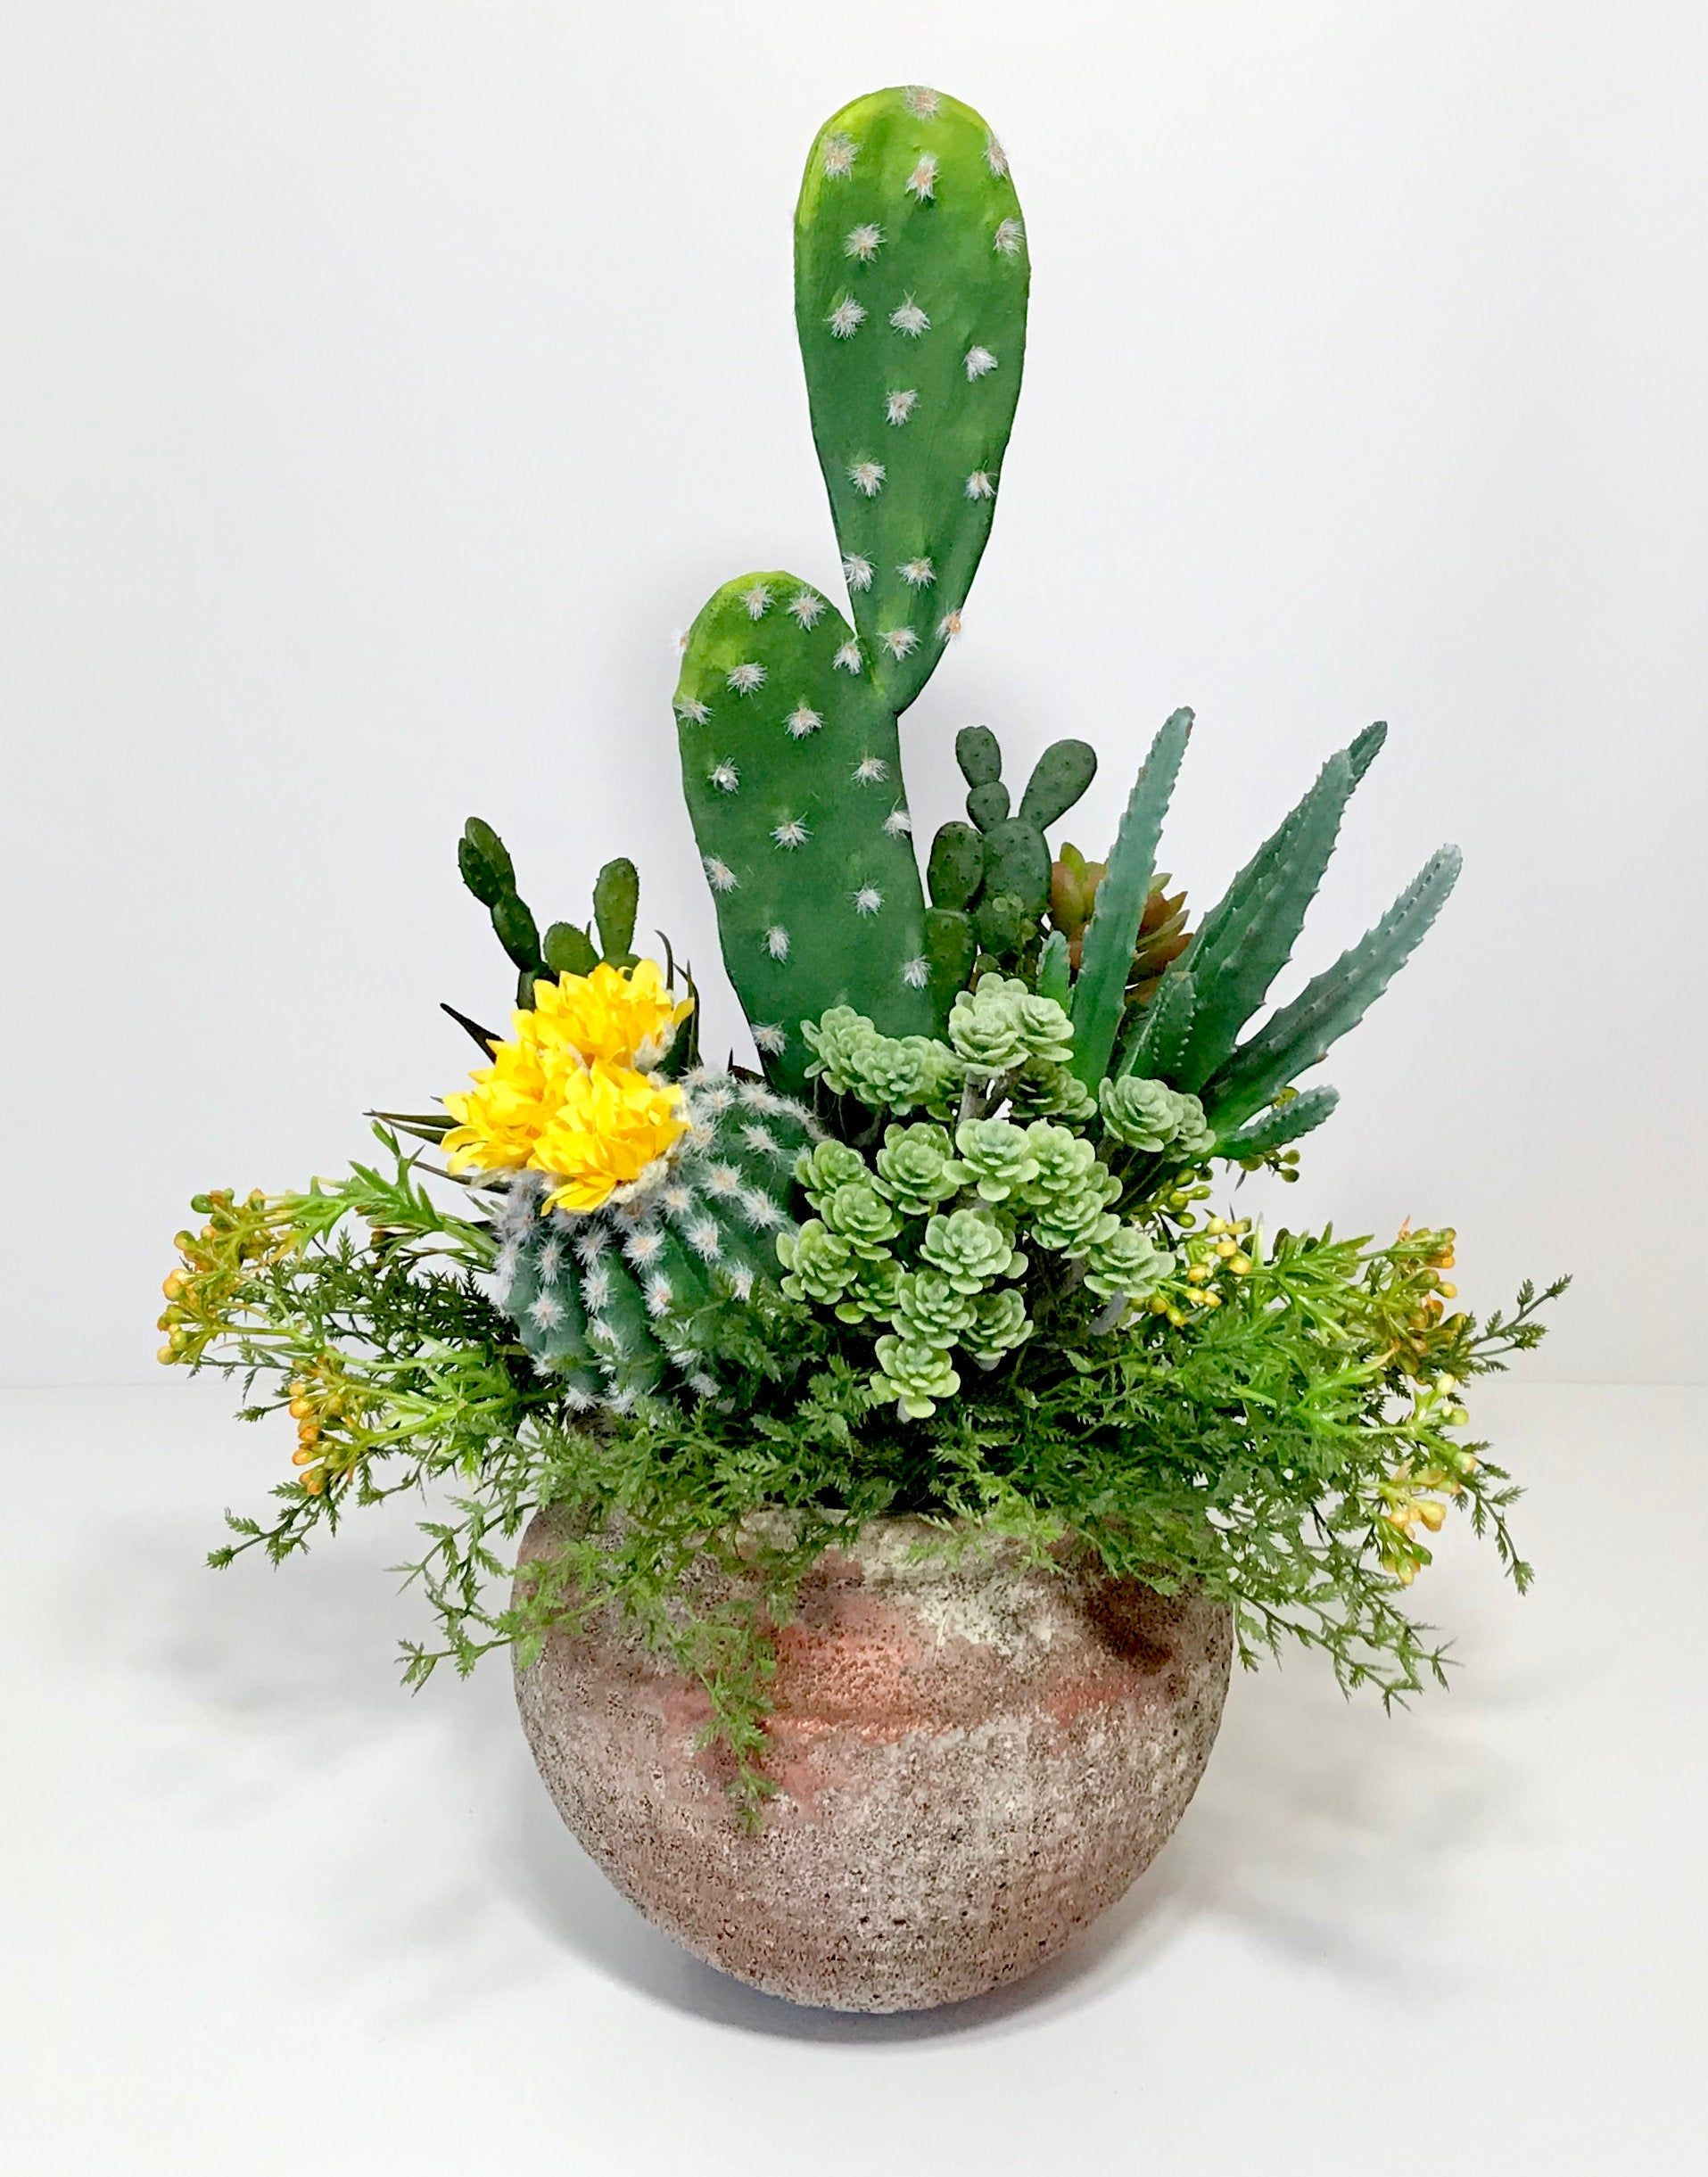 Artificial Cactus Faux Succulents Large Arrangement Terra Cotta Pot 20 Tall Faux Floral Centerpiece Large Potted Cactus Gift Handmade In 2020 Artificial Cactus Garden Design Succulents